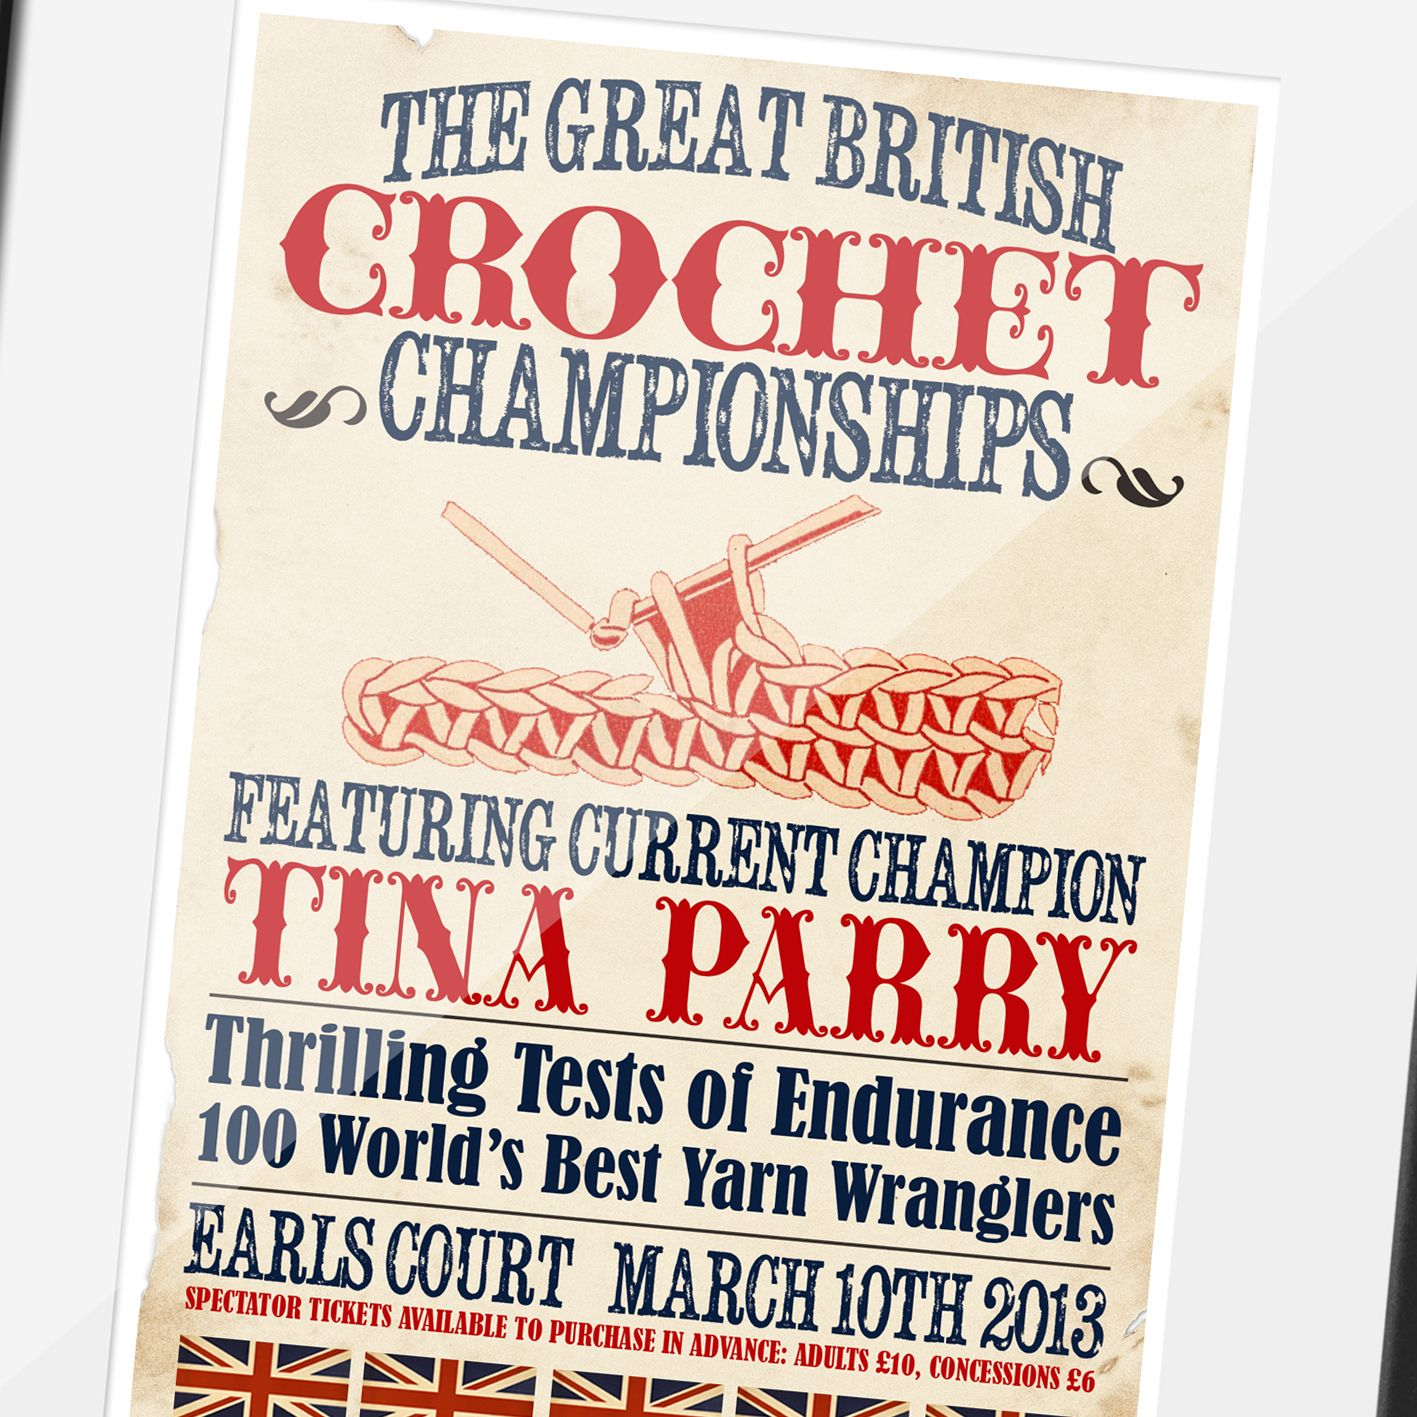 The Great British Crochet Championships Personalised Vintage Print   fun, unique vintage style personalied gift for someone who loves to crochet, from PhotoFairytales #crochet #crochetgift #craftgift